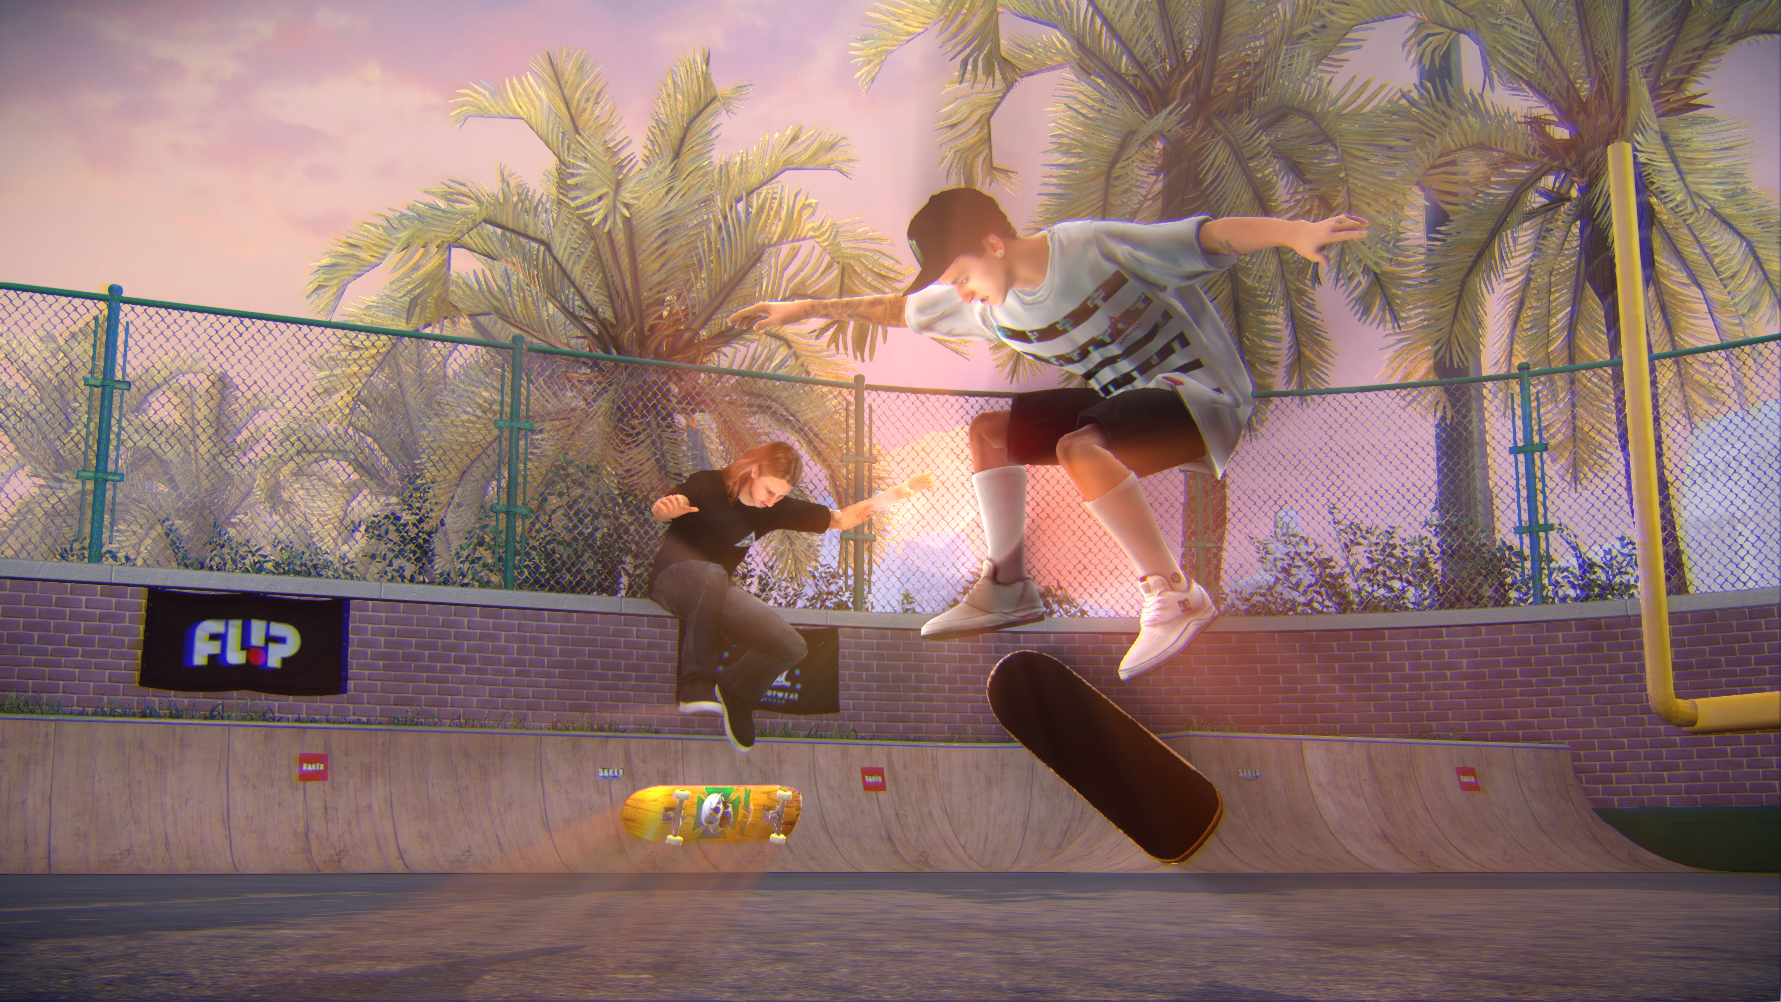 Get One More Look At Tony Hawk's Pro Skater 5's Behind The Scenes